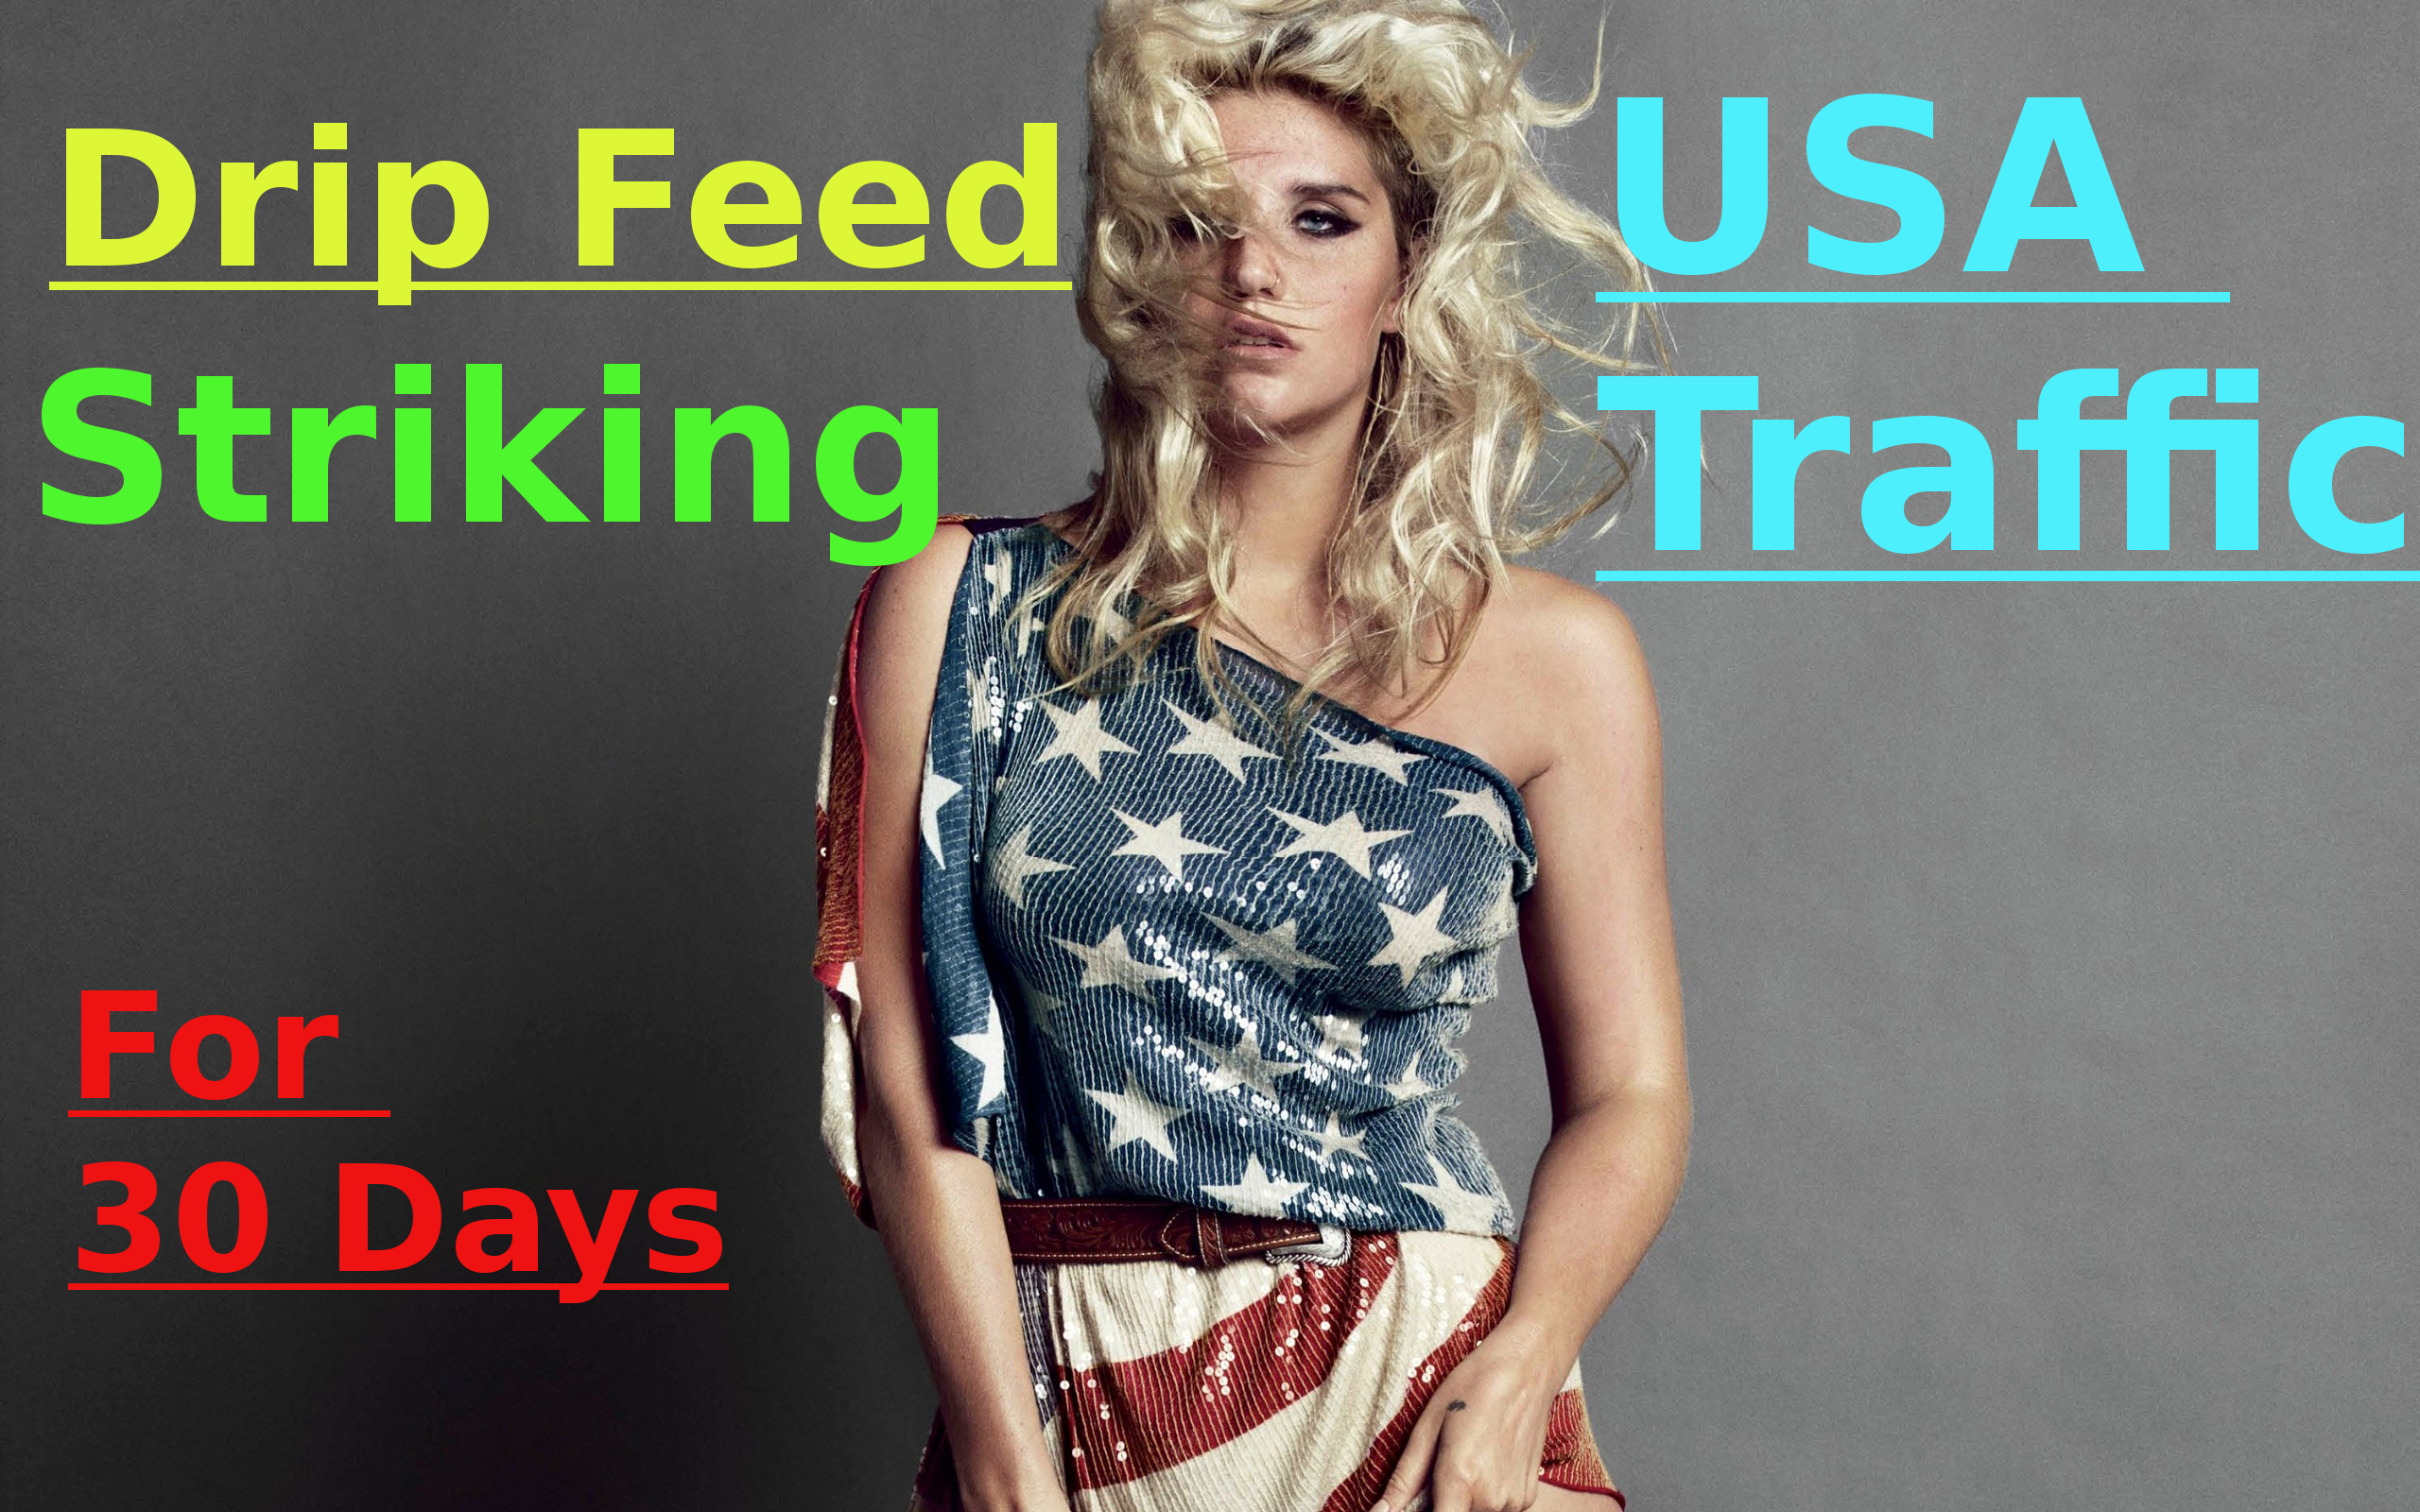 Drip Feed Striking USA Traffic For 30 Days To Your Websites and Blogs.